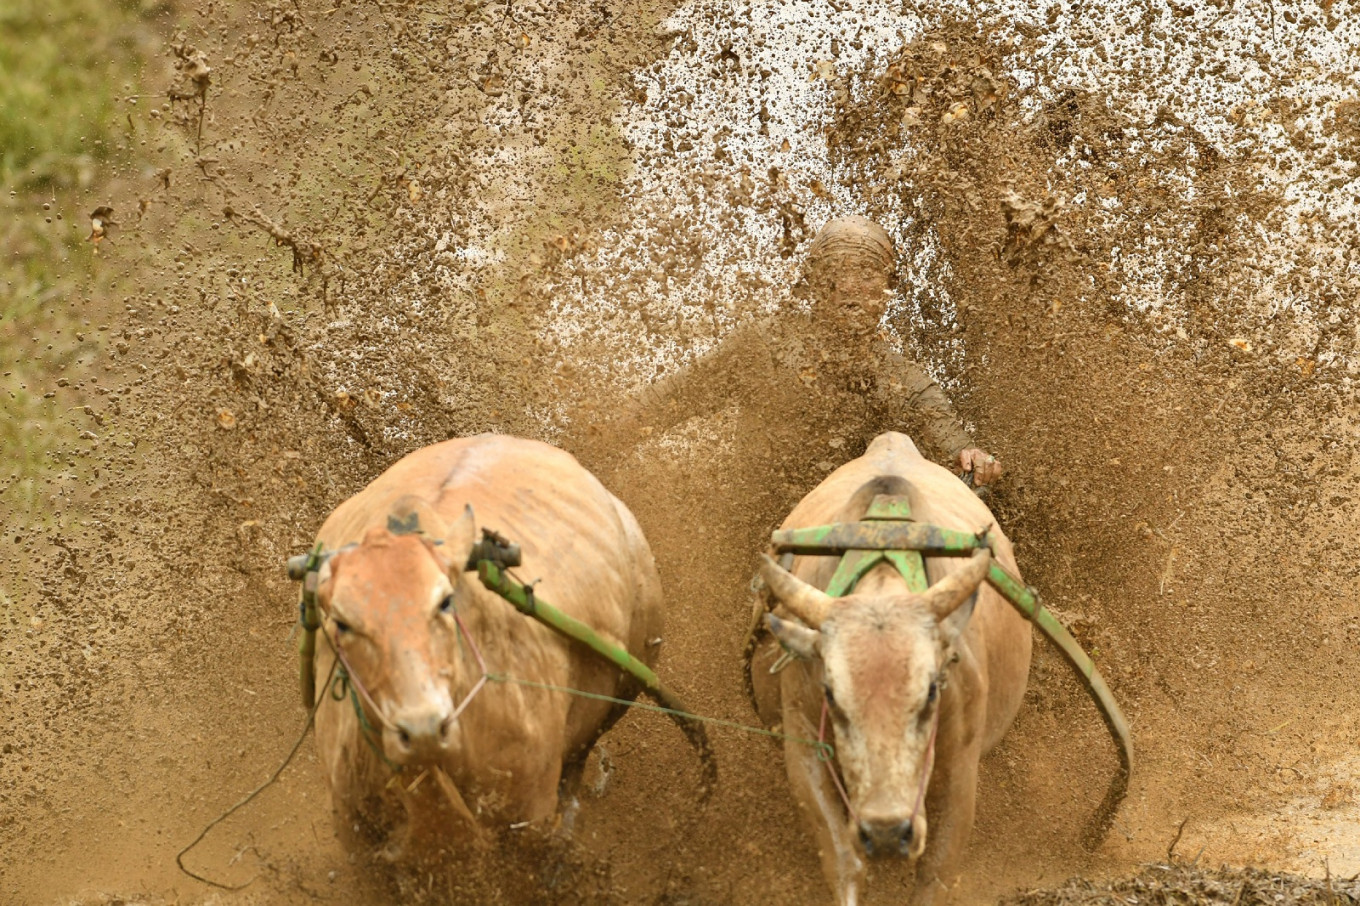 Wet-and-wild ride: Indonesia mud bull races not for faint of heart